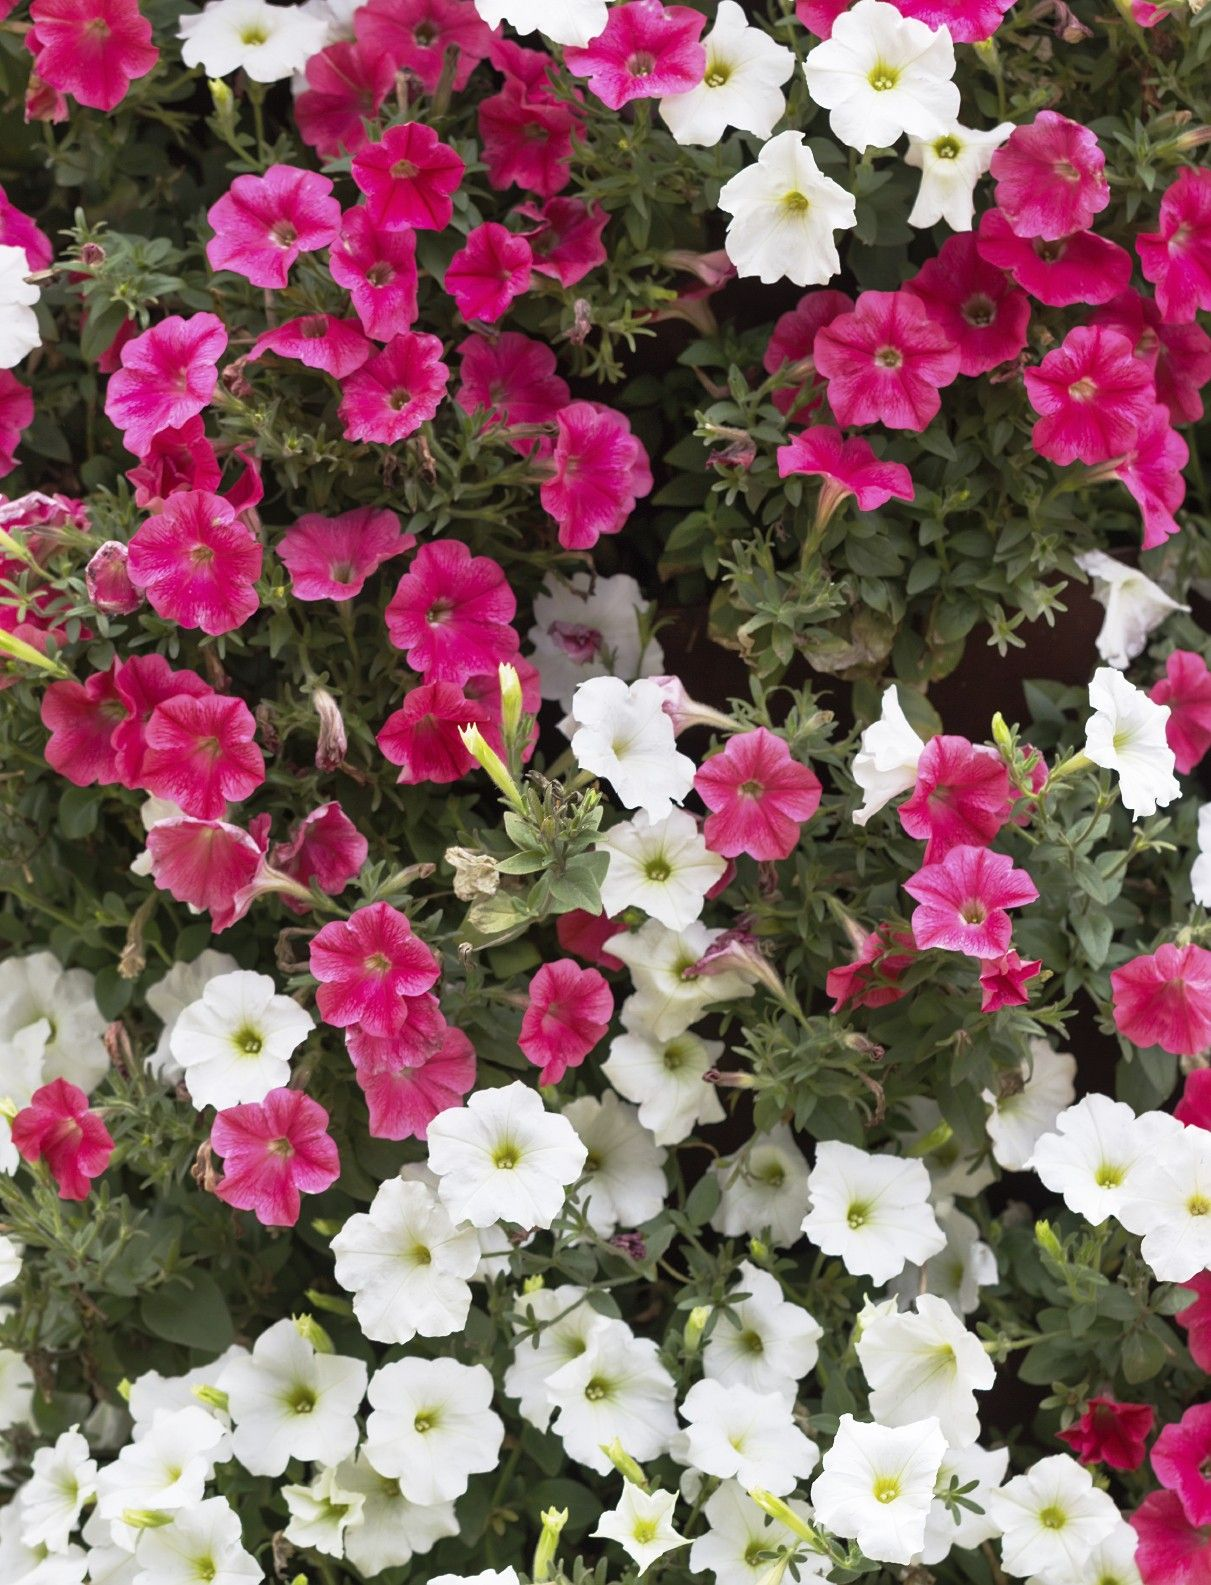 Types Of Petunia Plants What Are The Different Petunia